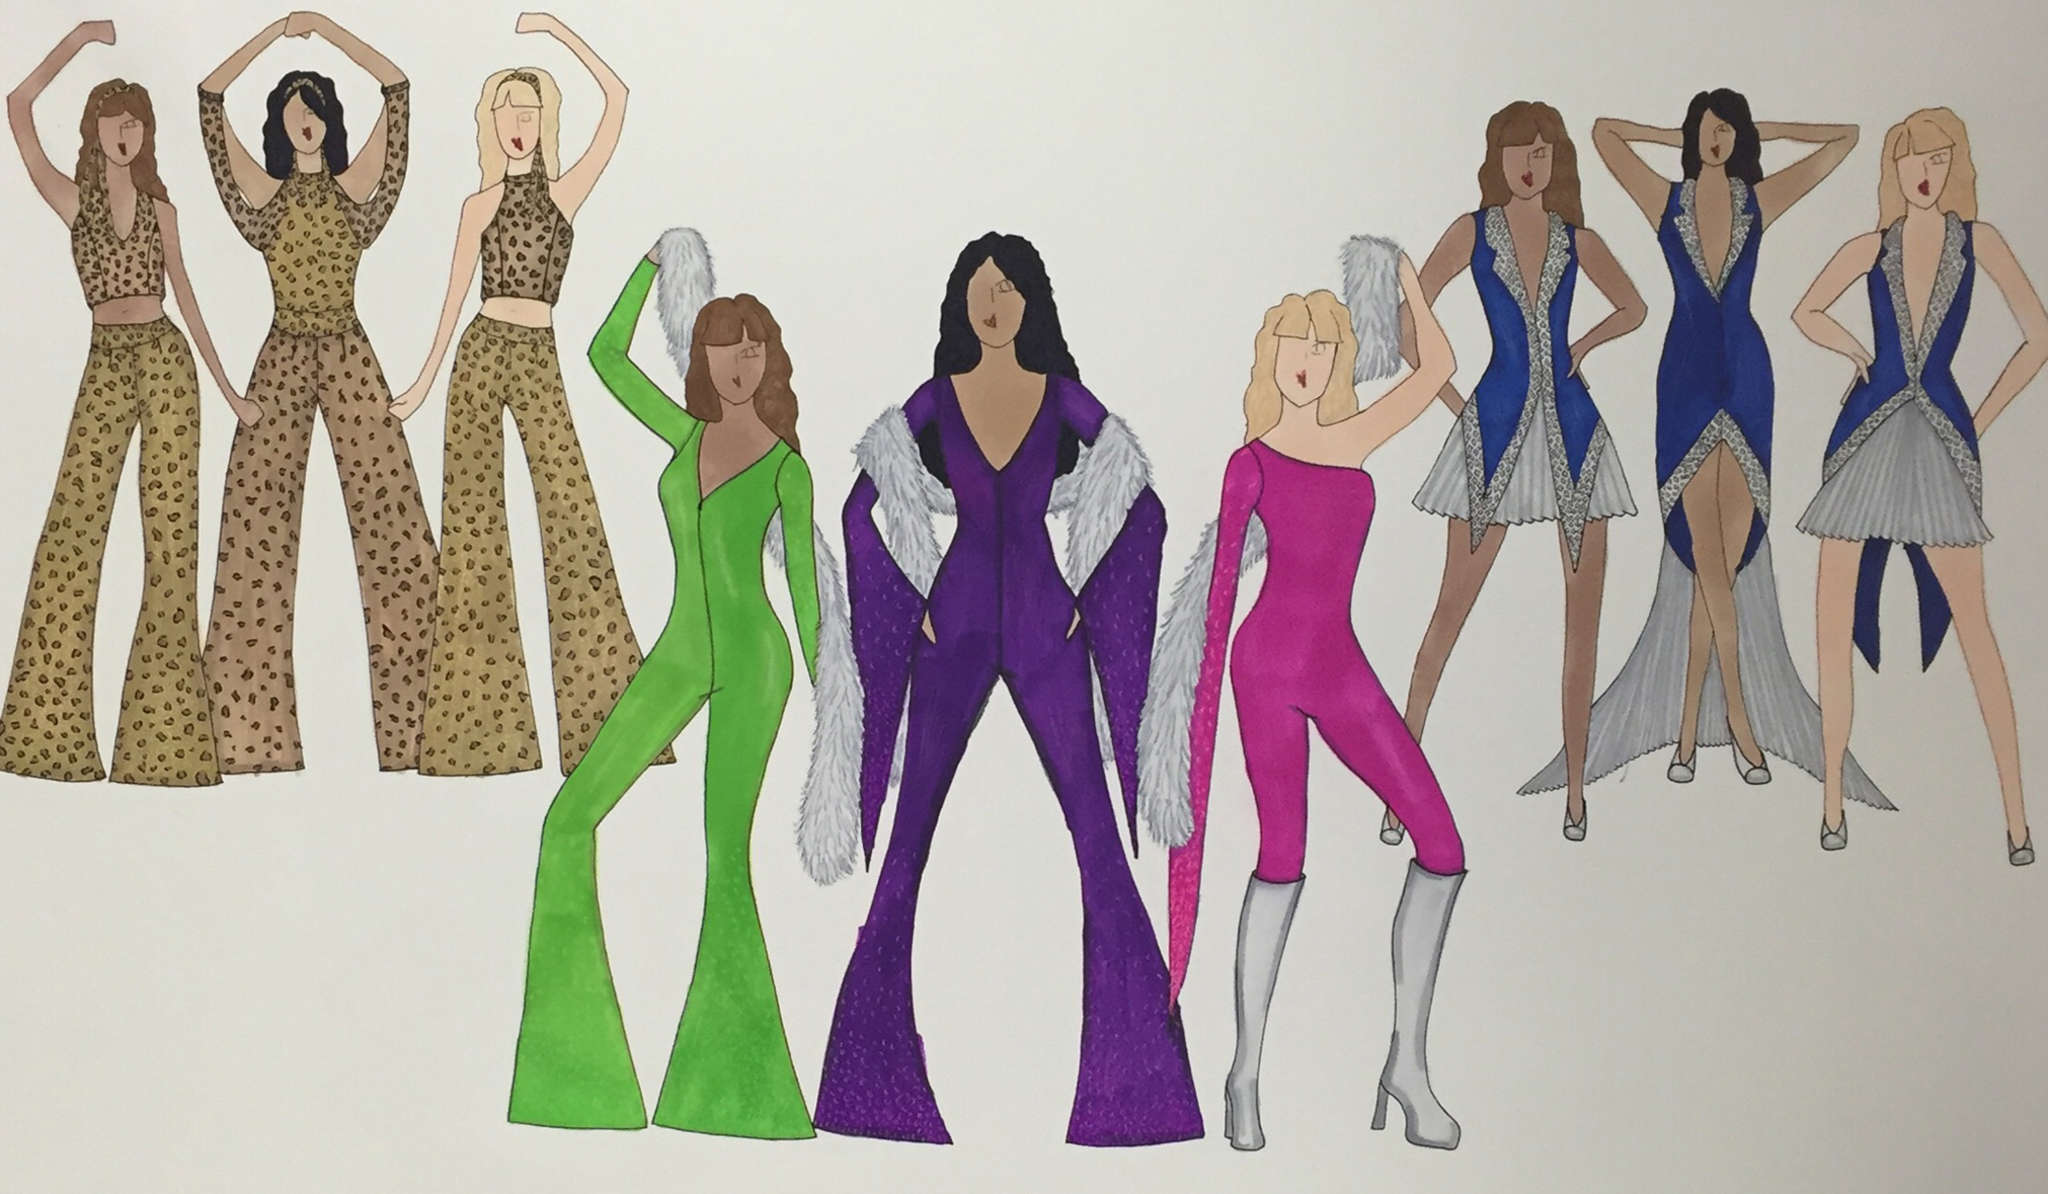 Holly McCaffrey´s designs for the costumes. The illustrations will be on display at the Merriam Theater during the run.